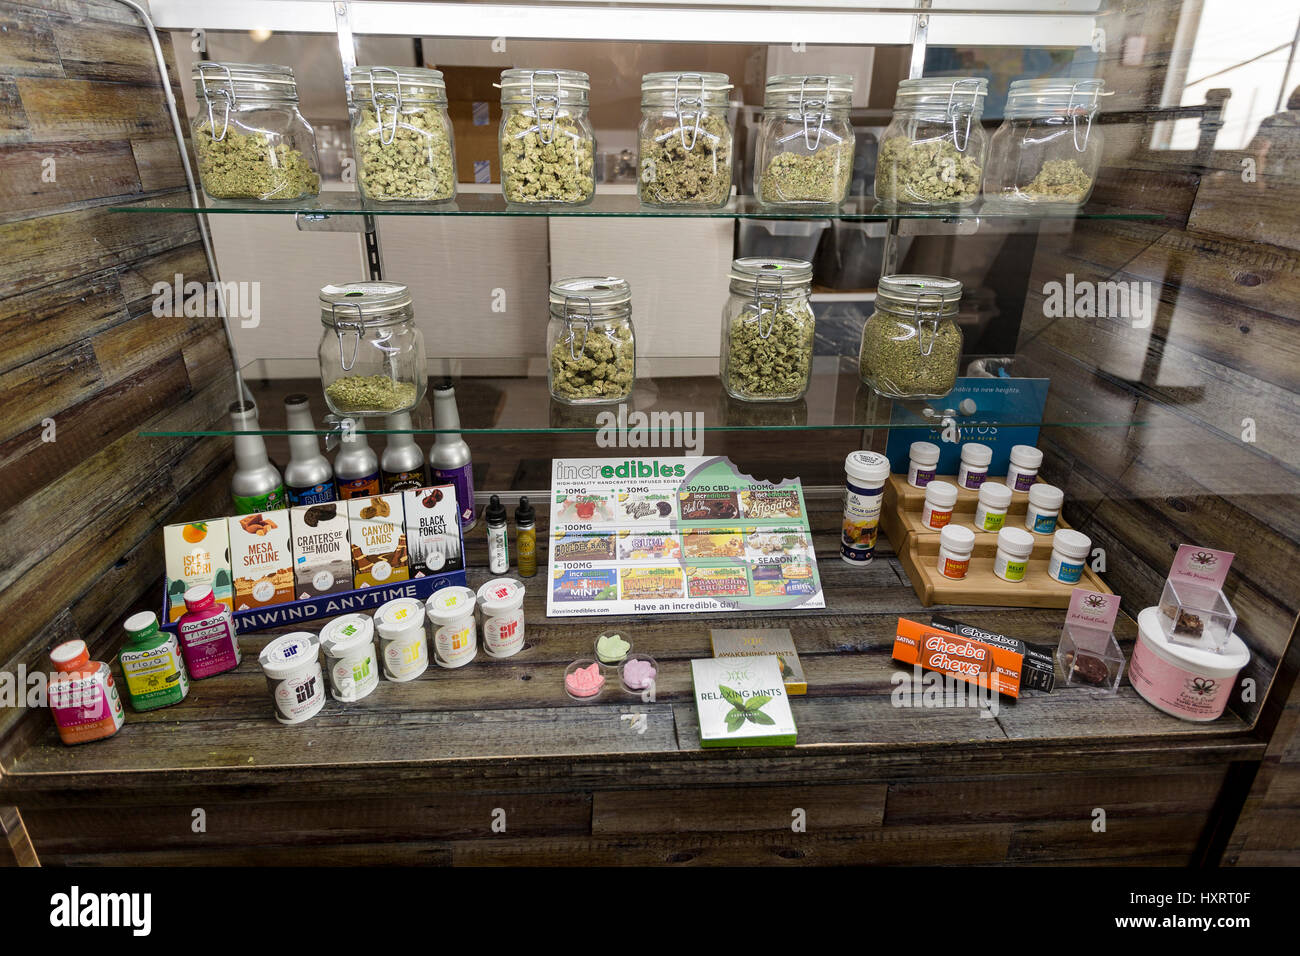 Candy Display Case Stock Photos & Candy Display Case Stock